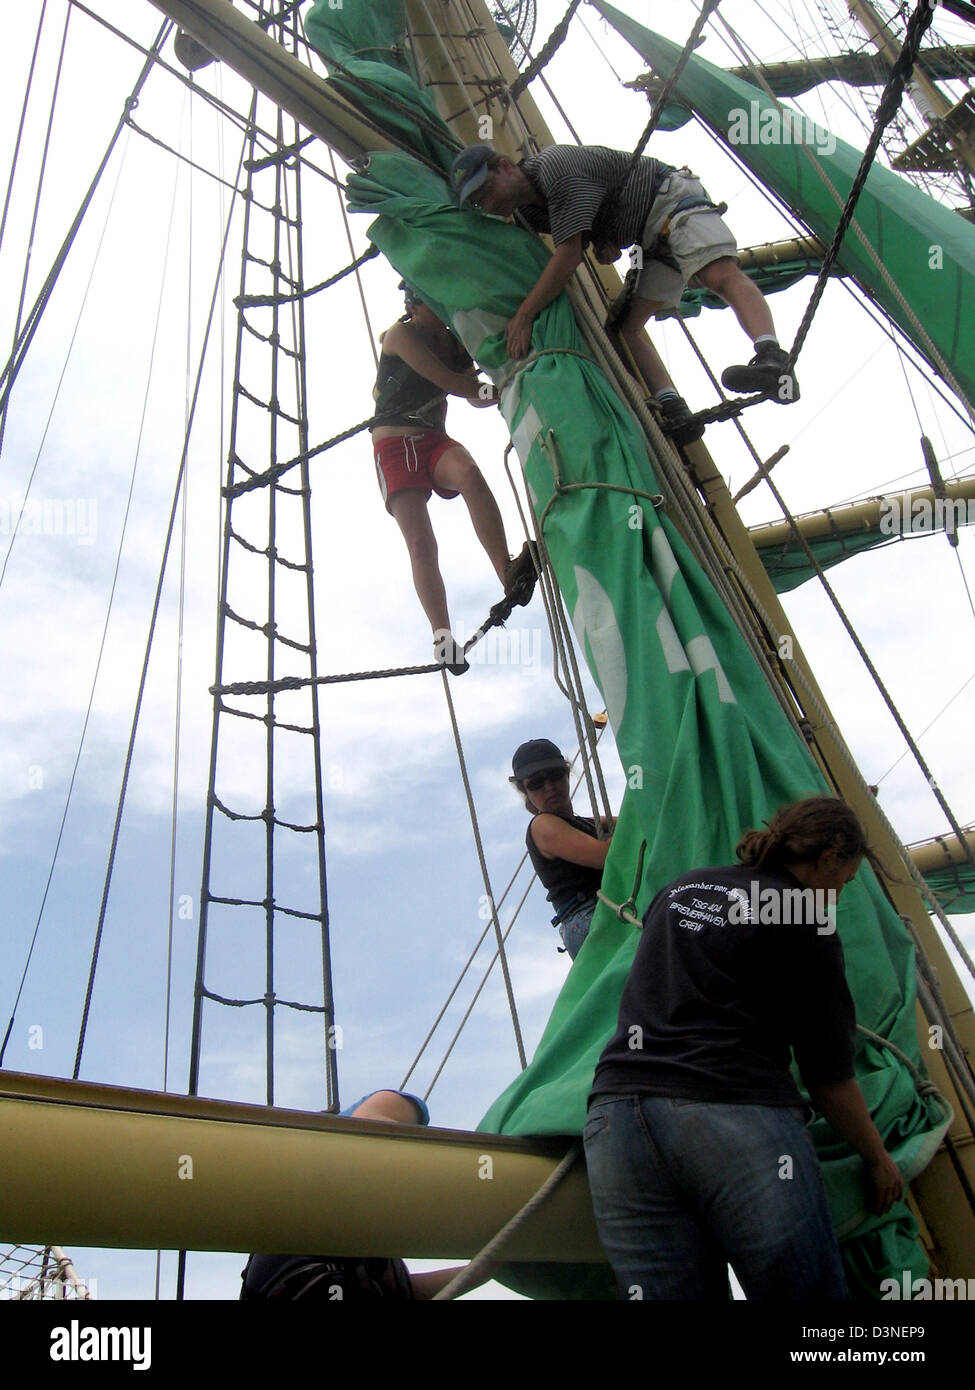 The crew strikes the sails aboard the barque Alexander von Humboldt in the Pacific Ocean offshore South America, - Stock Image